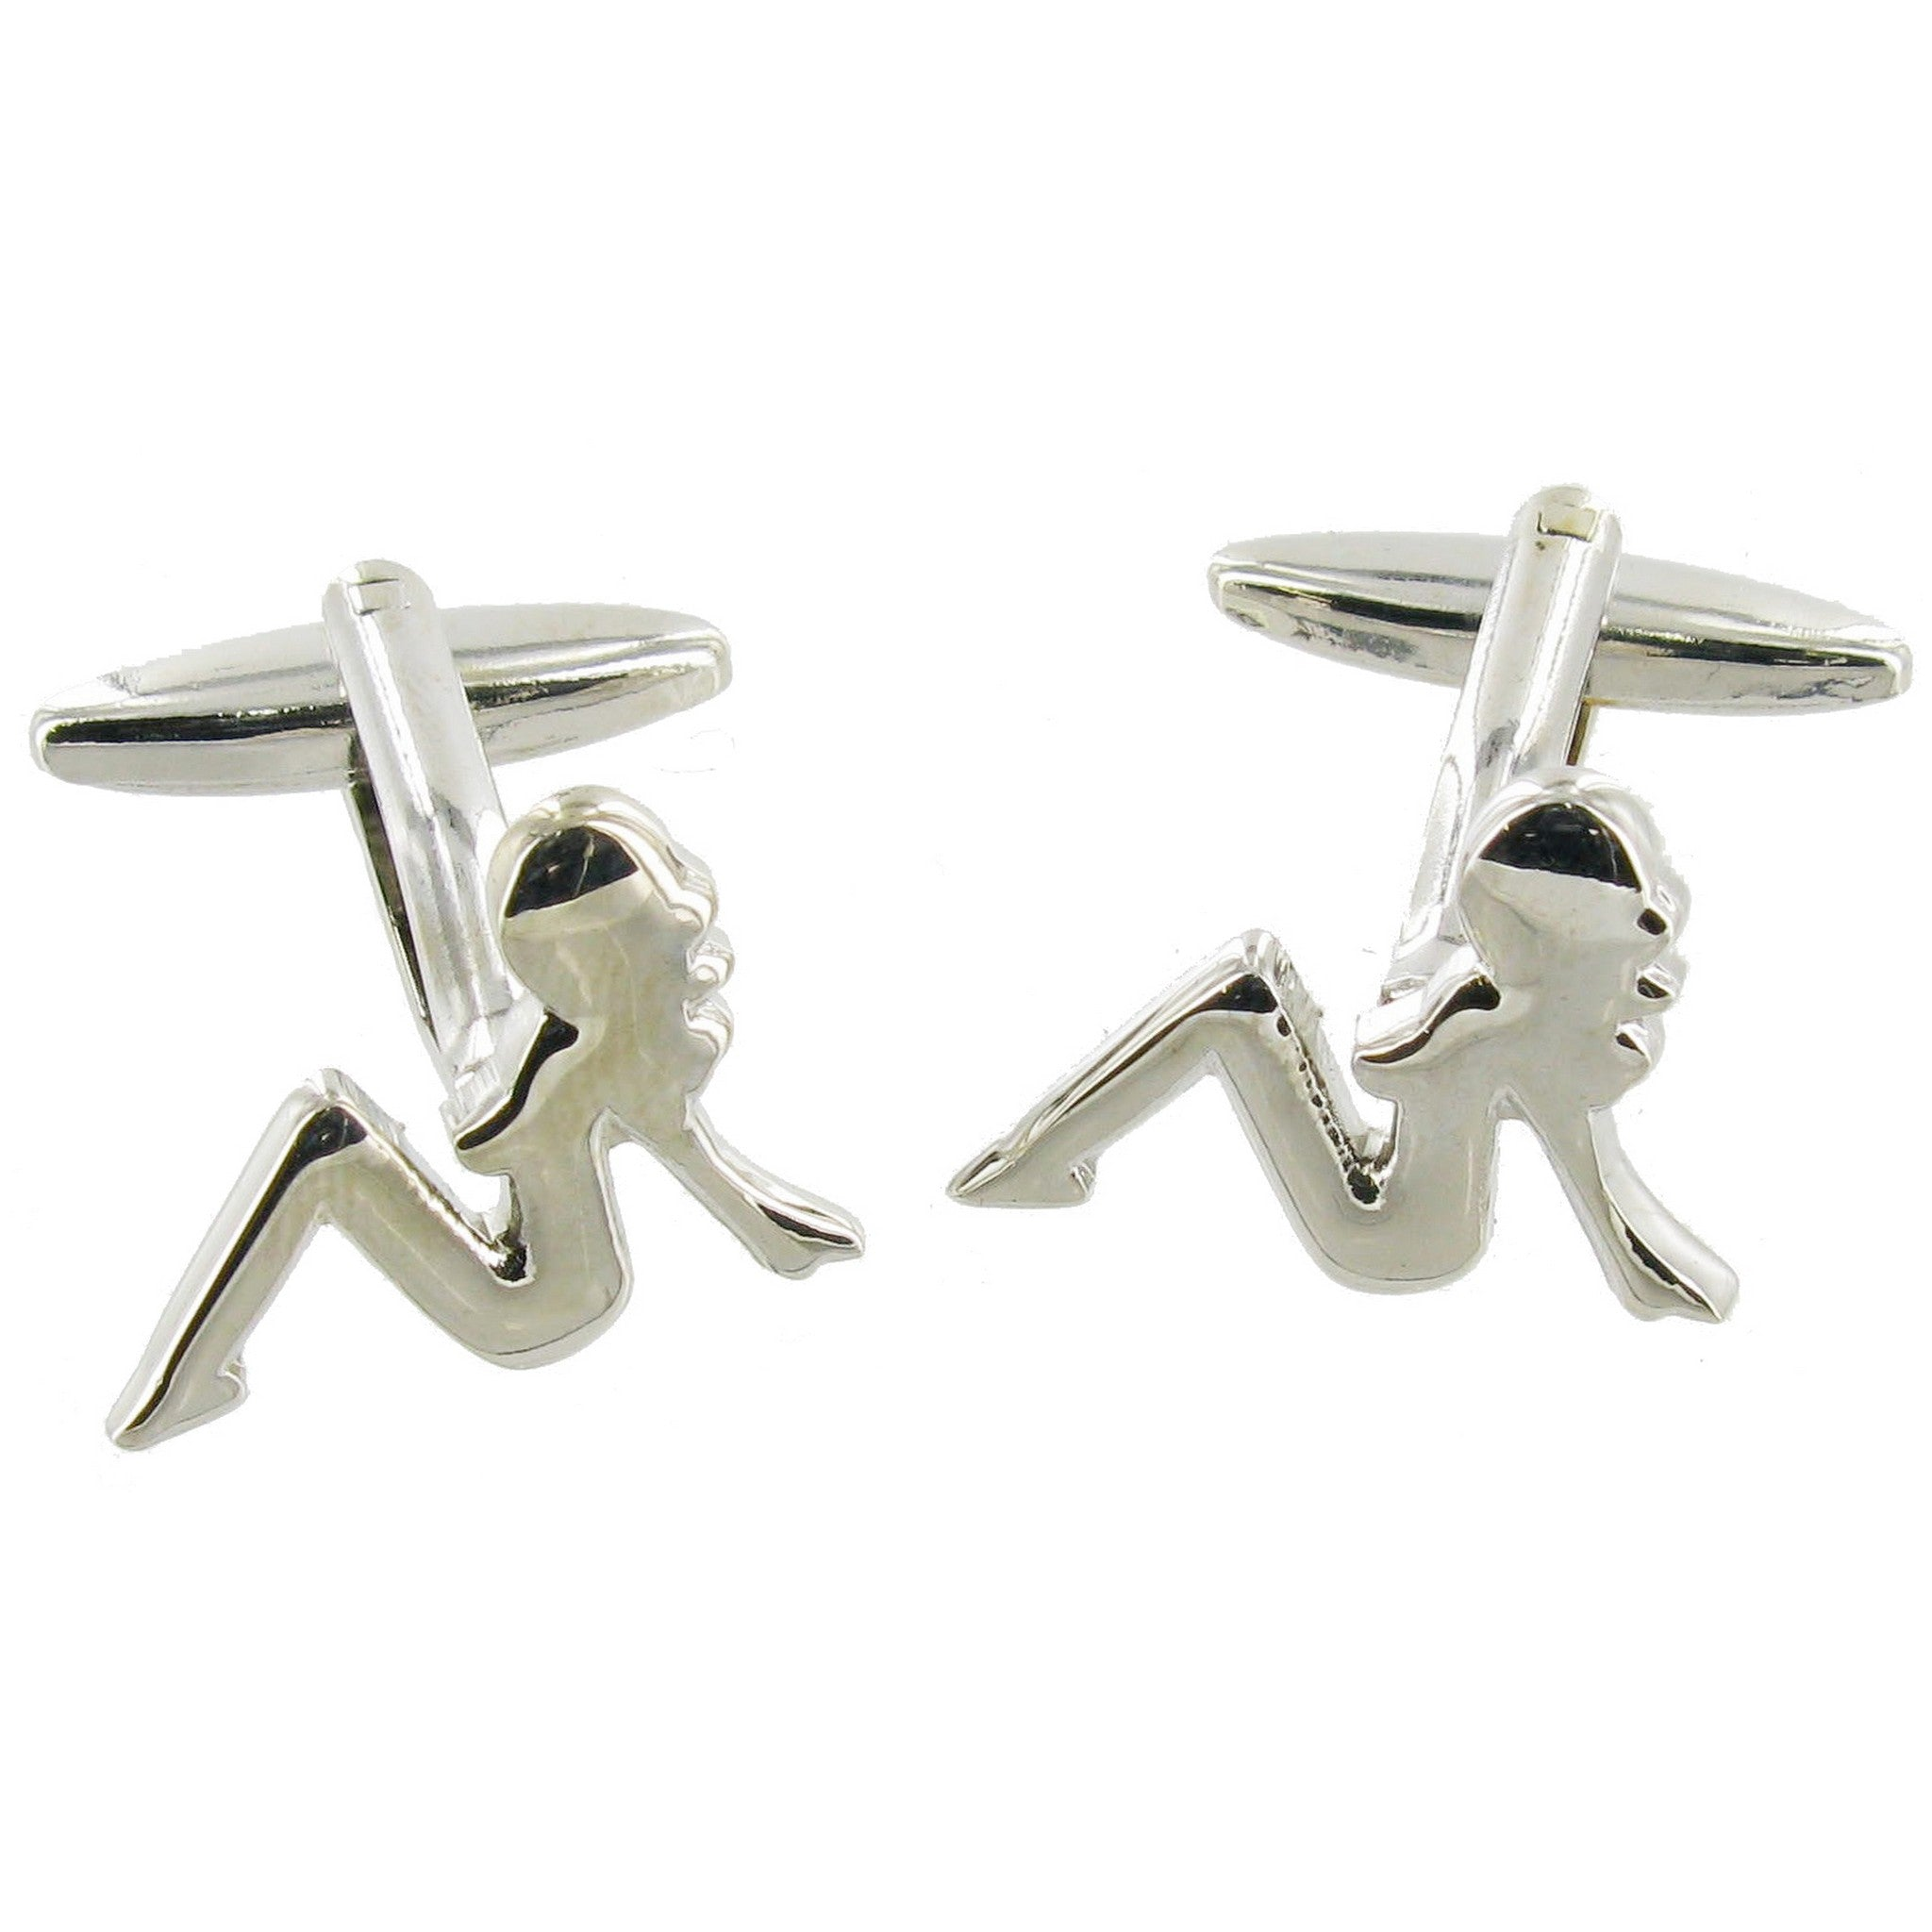 Lady Silhouette Cuff Links